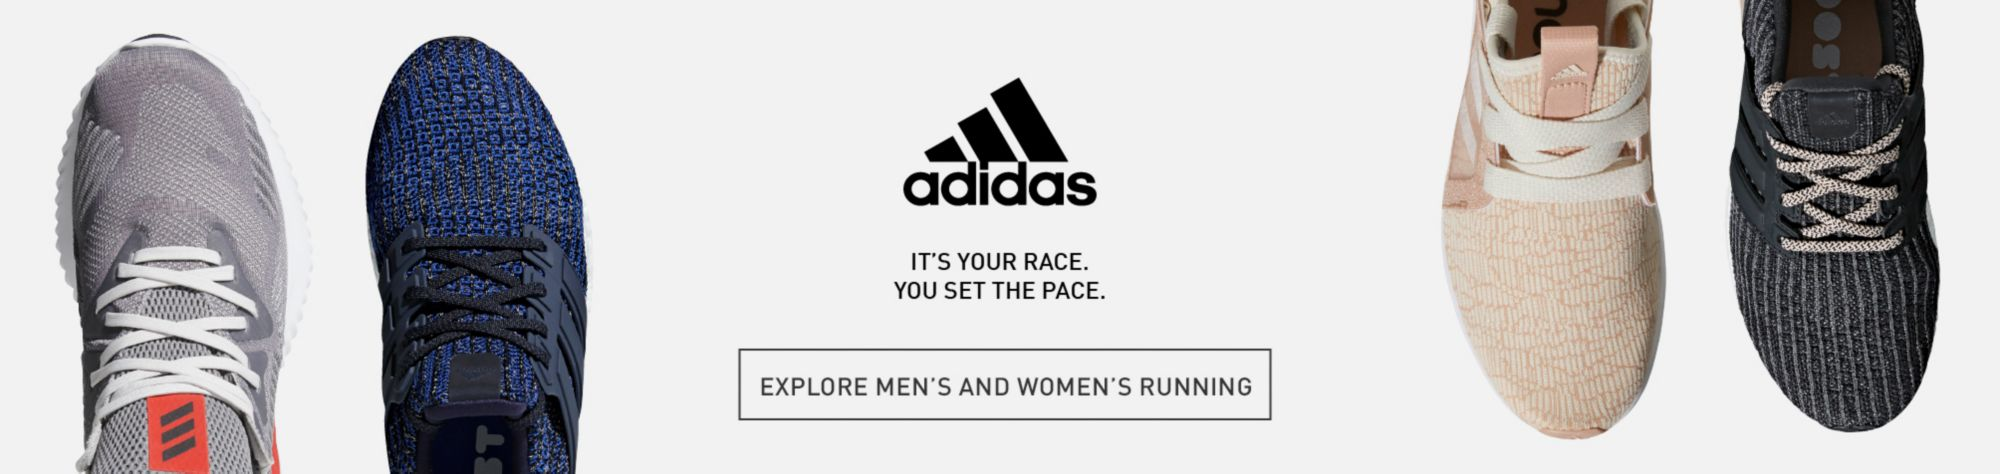 Adidas Running Shoe Shop